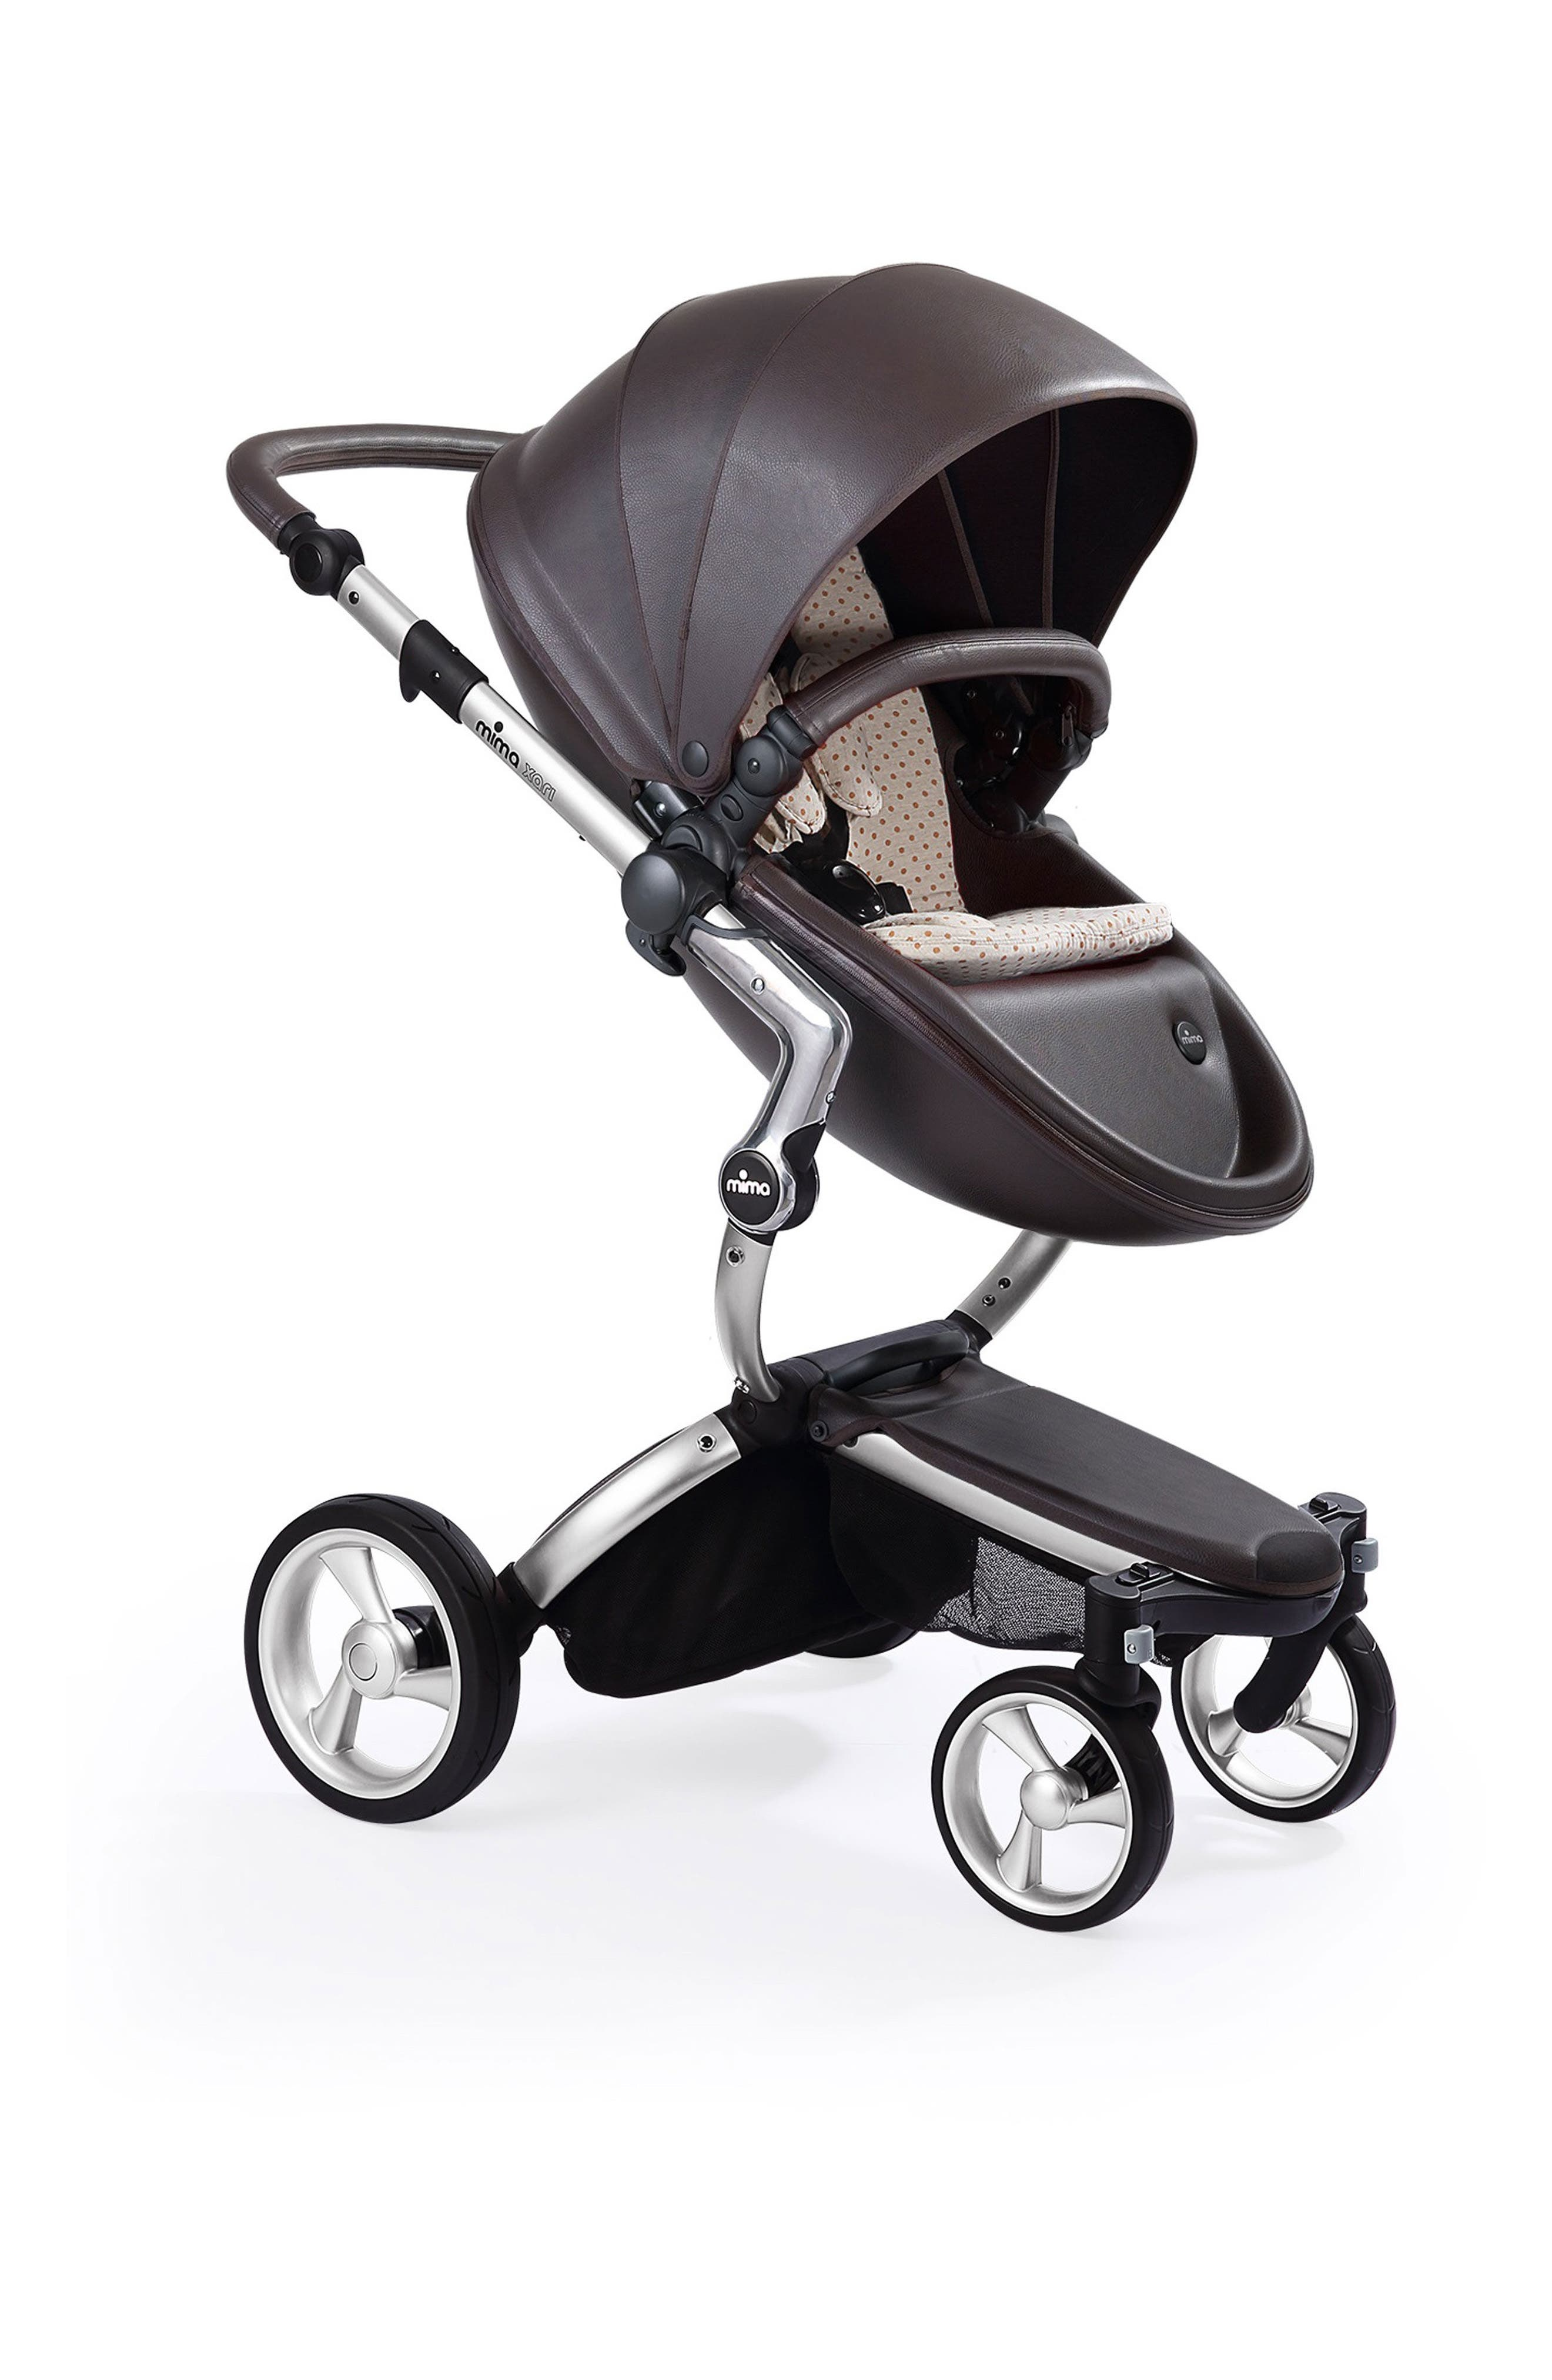 Xari Aluminum Chassis Stroller with Reversible Reclining Seat & Carrycot,                         Main,                         color, Aluminum/ Beige